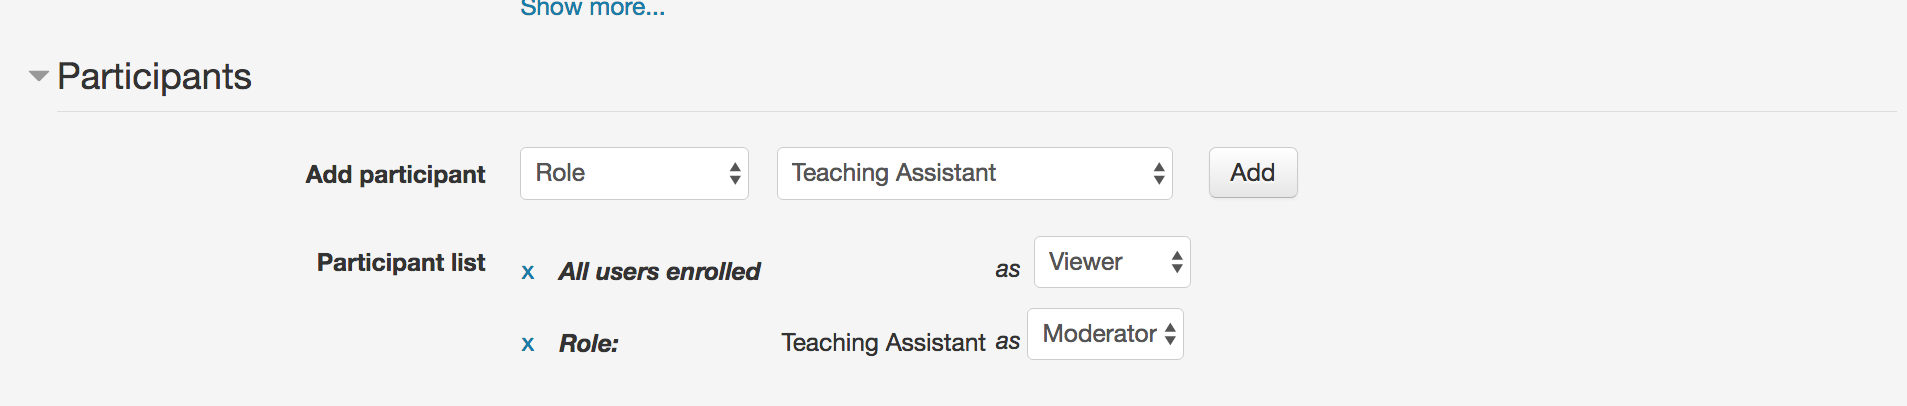 "This screen shot provides a visual of the BBB settings window where the user can select and assign different participant roles. The image shows that the Teaching Assistant can be assigned a role of Moderator and all users can be assigned the role of ""viewer""."